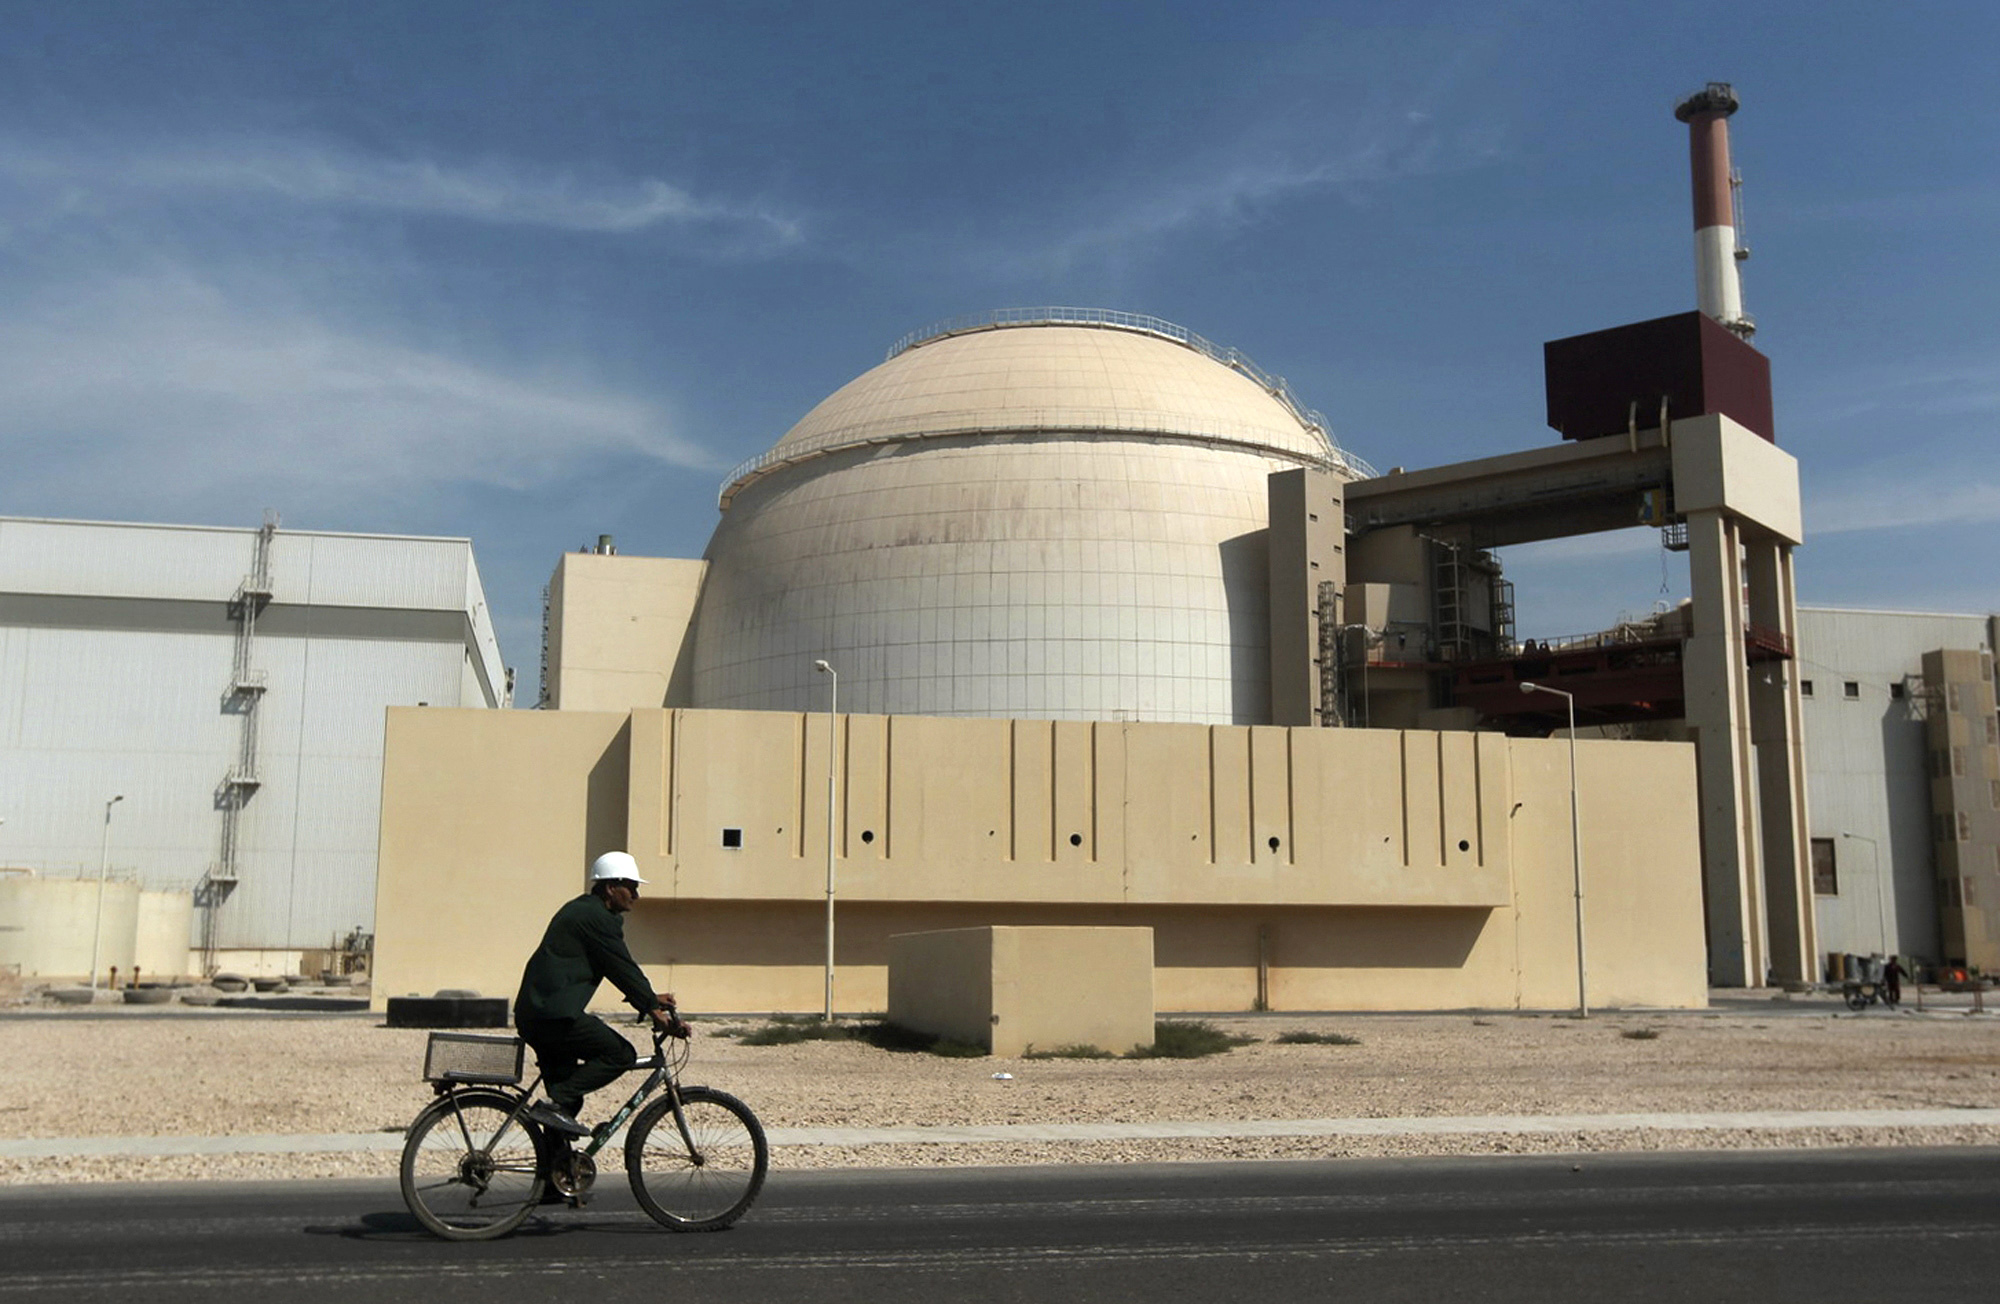 """In this Oct. 26, 2010 file photo, a worker rides a bicycle in front of the reactor building of the Bushehr nuclear power plant, just outside the southern city of Bushehr. Iran's sole nuclear power plant has undergone a temporary emergency shutdown, state TV reported on Sunday, June 20, 2021. An official from the state electric energy company, Gholamali Rakhshanimehr, said on a talk show that the Bushehr plant shutdown began on Saturday and would last  for three to four days."""""""